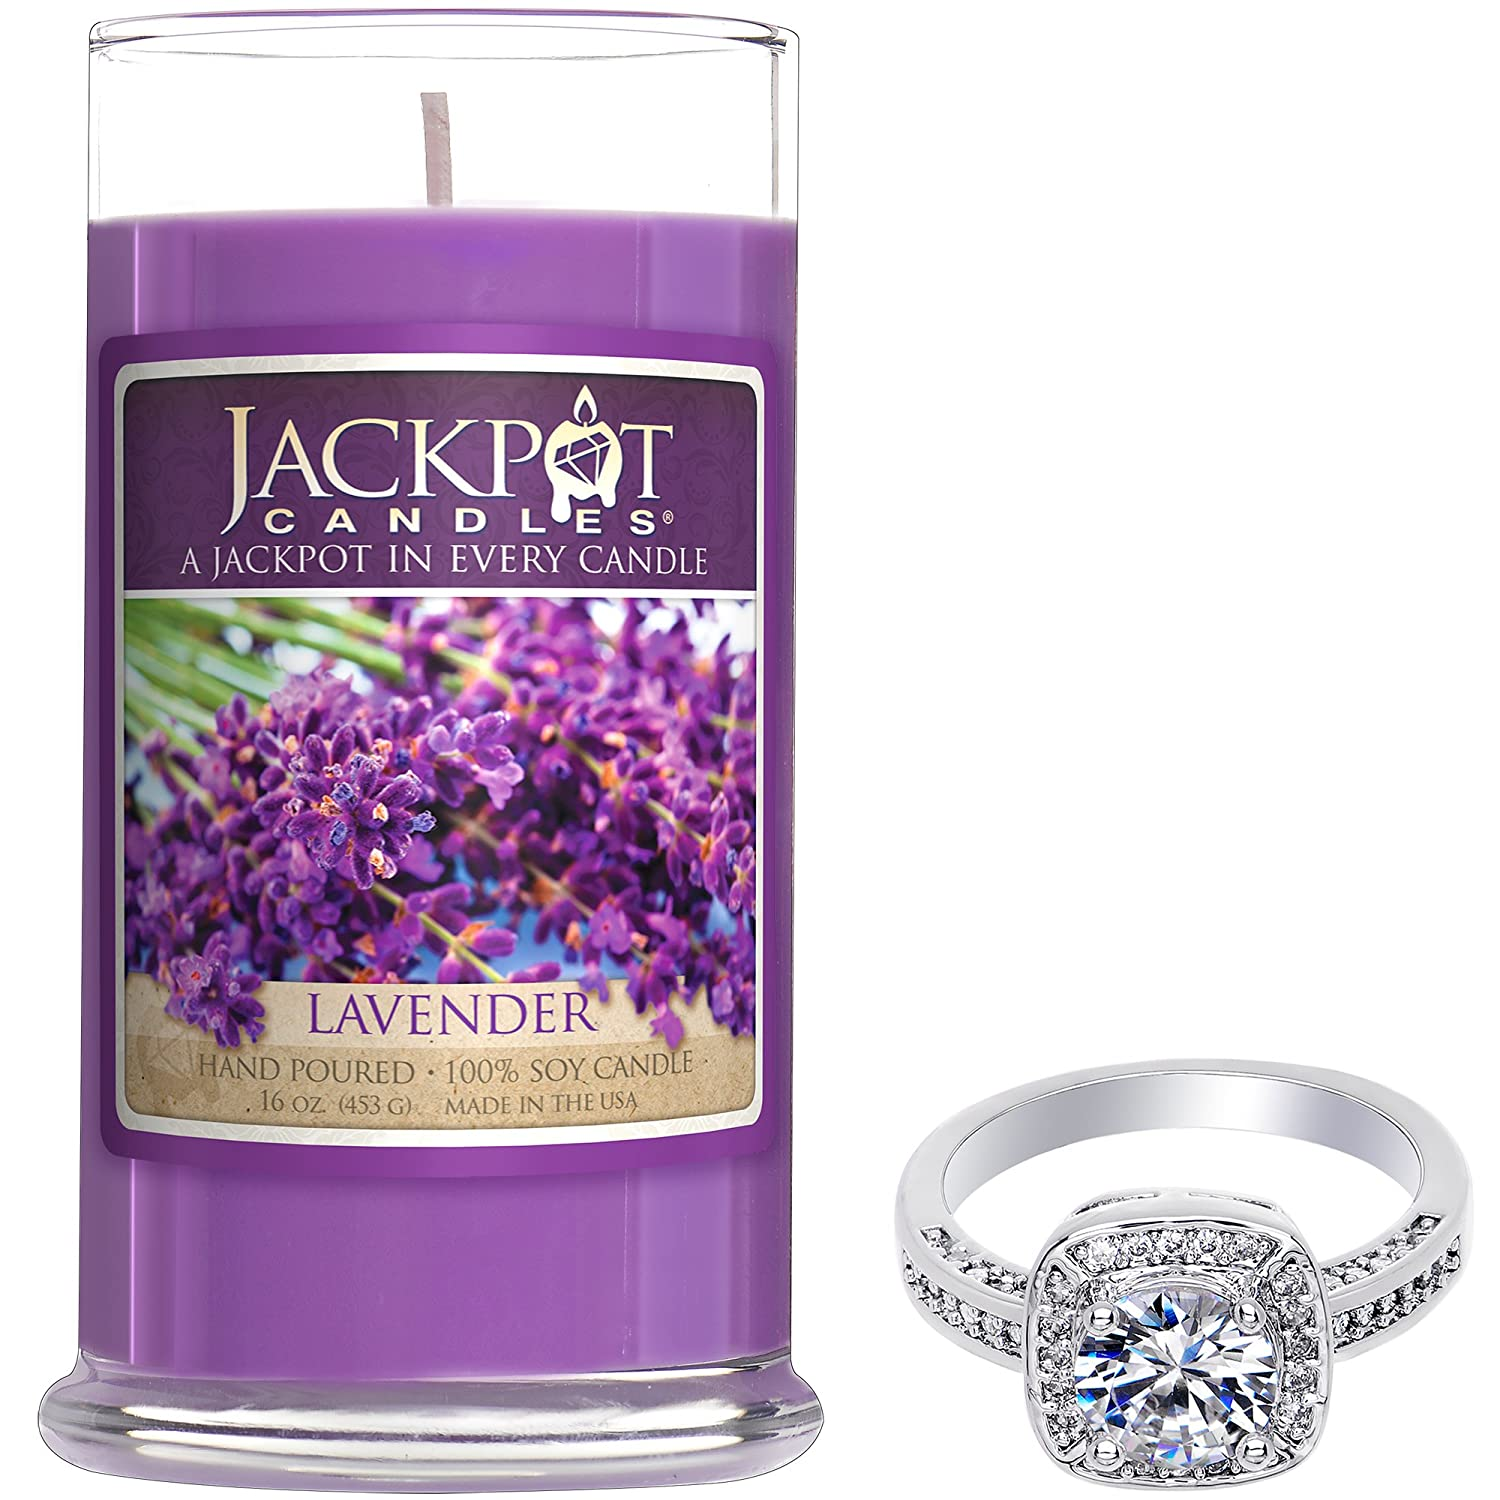 Amazon jackpot candles christmas candle with ring inside amazon jackpot candles christmas candle with ring inside surprise jewelry valued at 15 to 5000 ring size 6 home kitchen izmirmasajfo